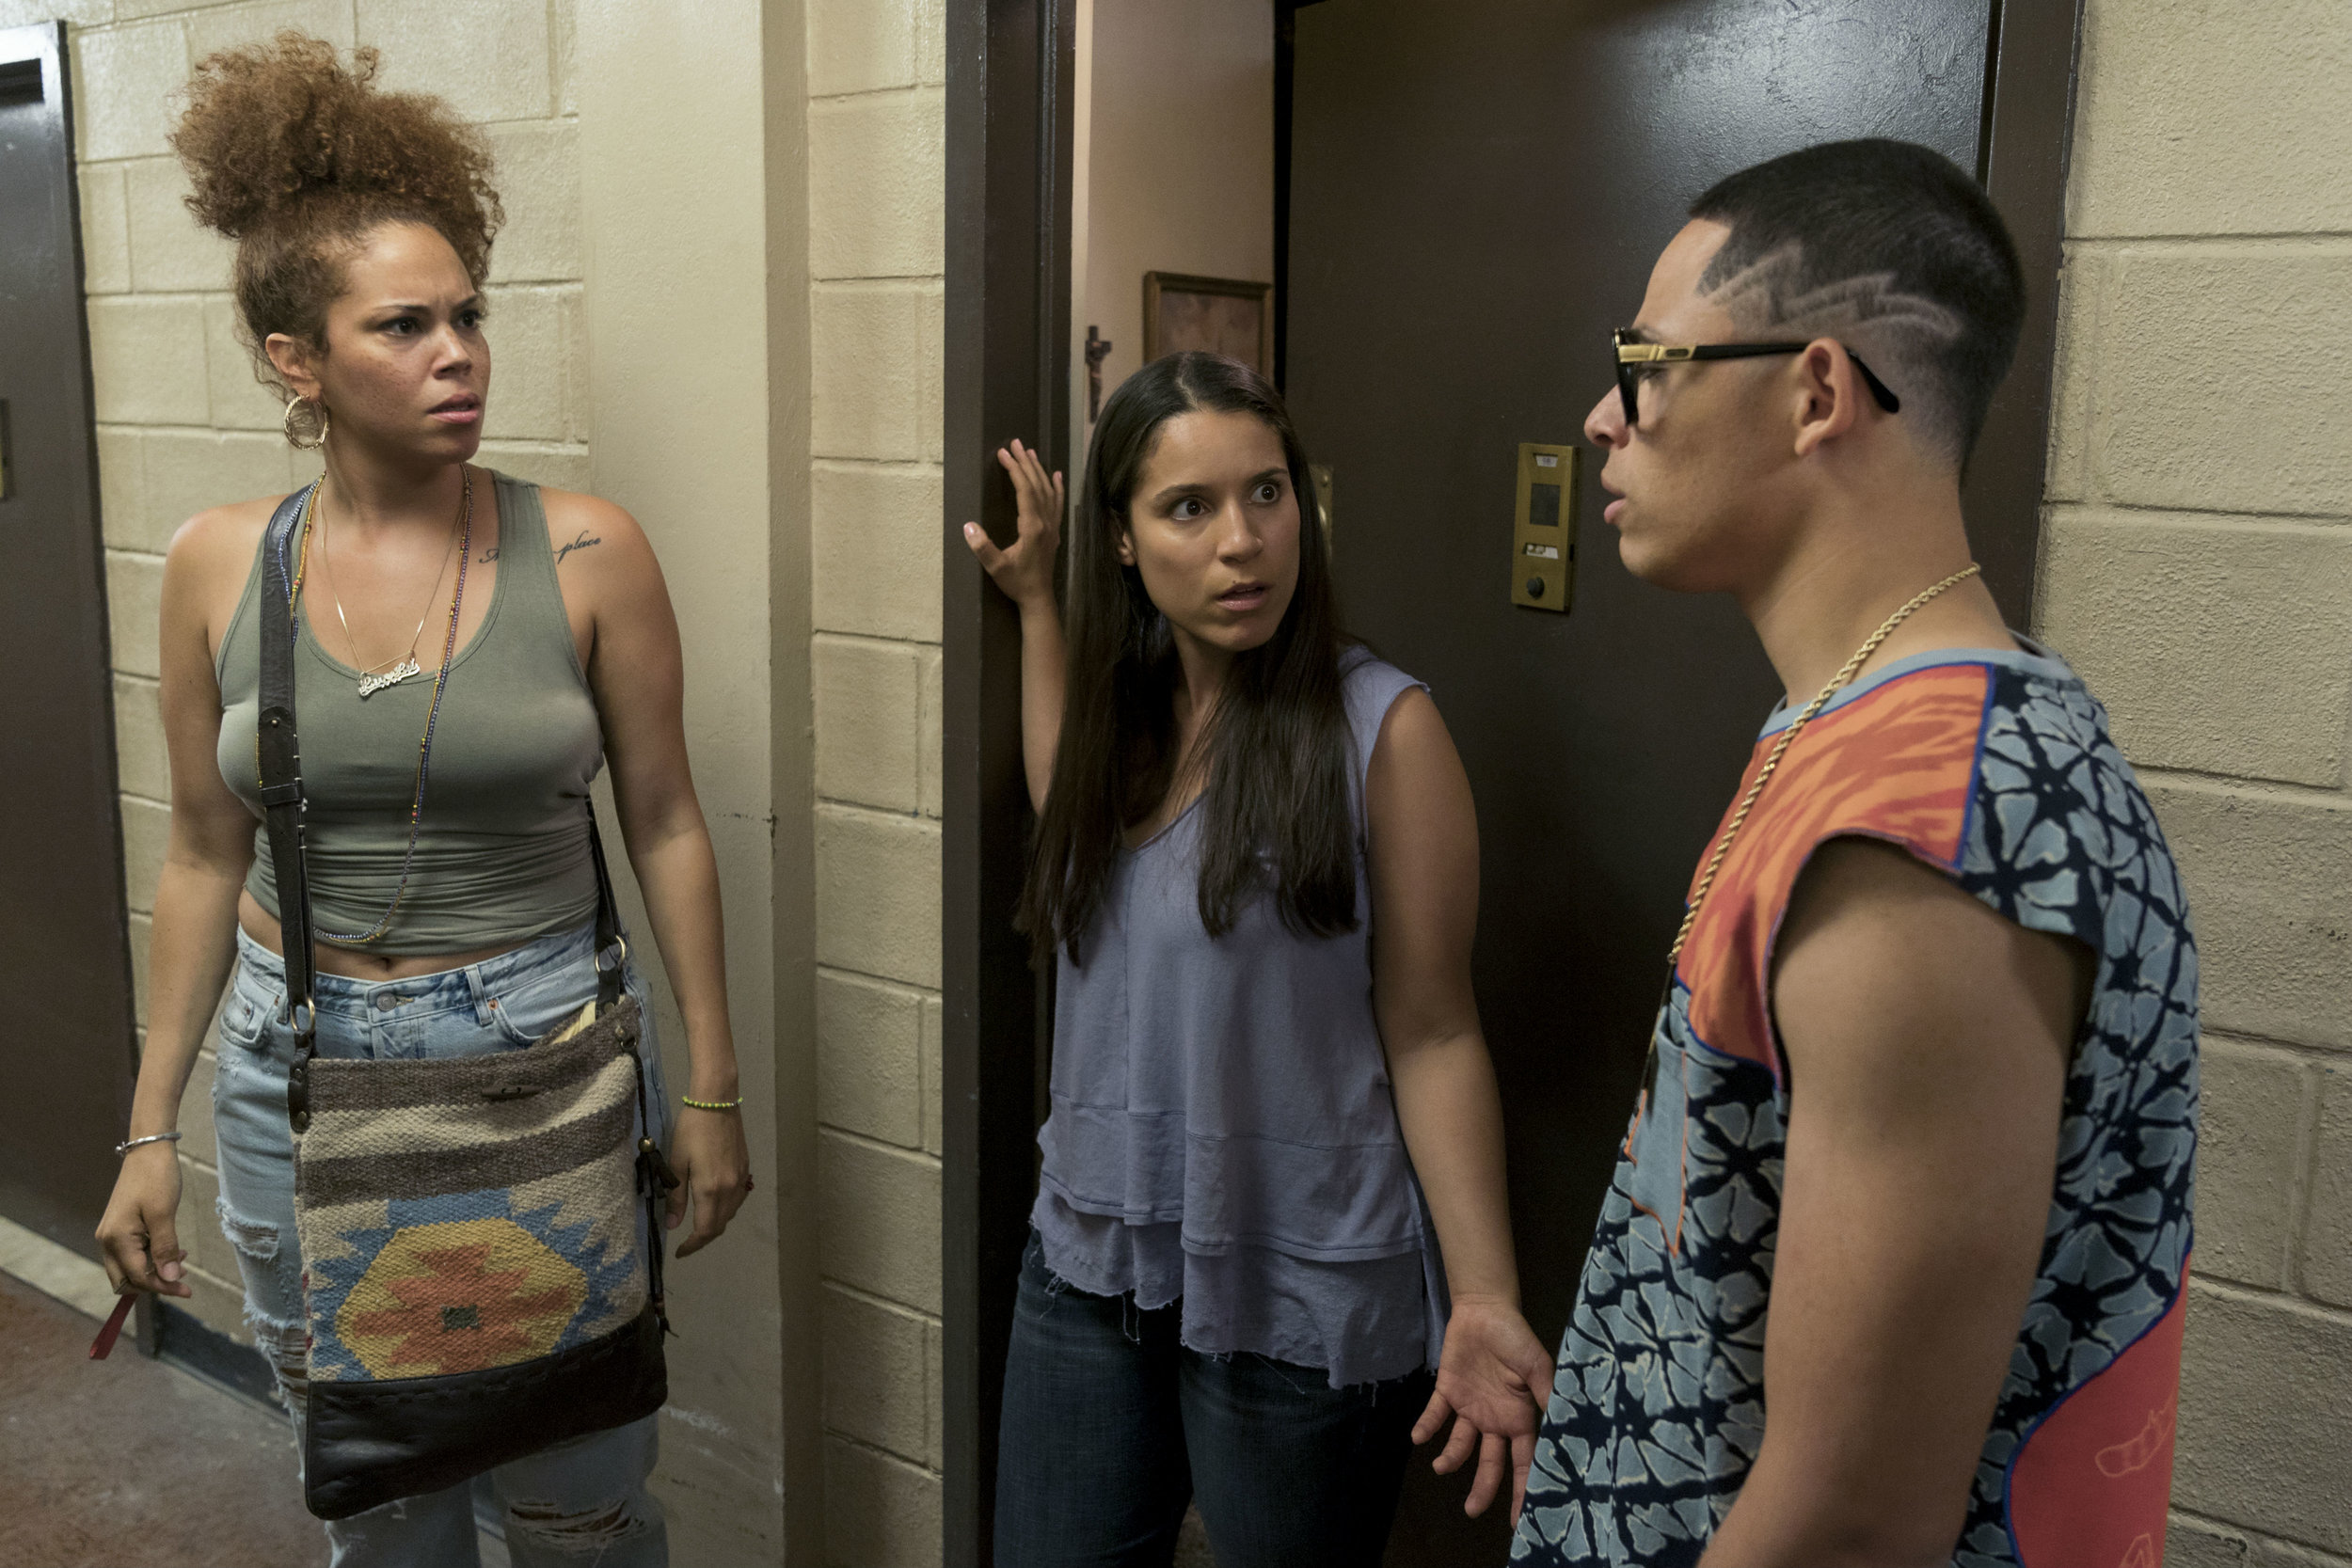 She-s-Gotta-Have-It-S2-pic-19-Santana-Benitez-Anthony-Ramos.jpg